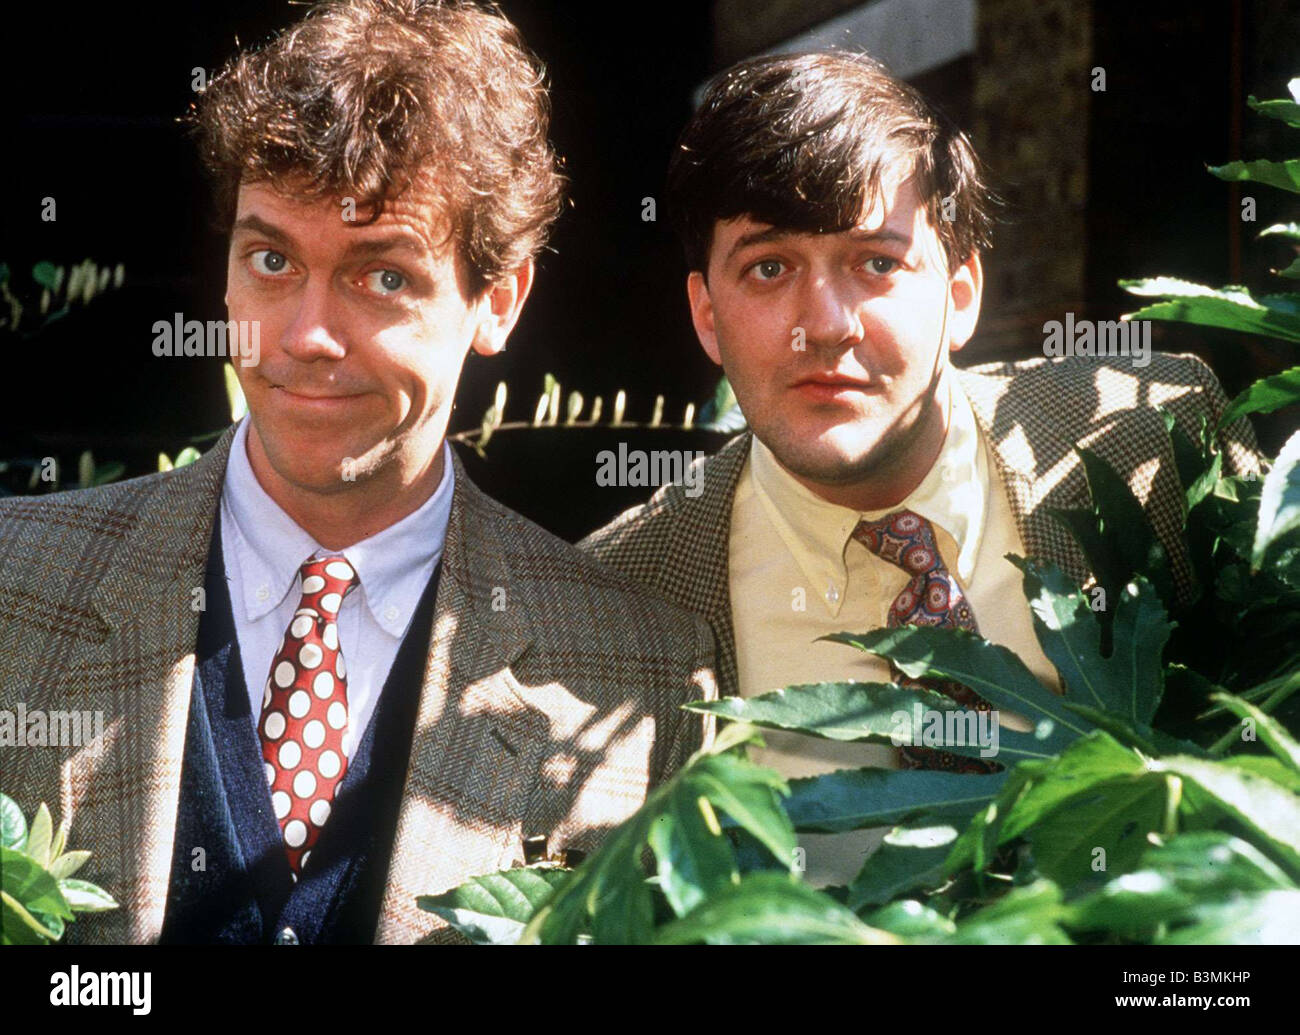 Stephen Fry television comedian entertainer and writer with partner Hugh Laurie mirrorpix - Stock Image